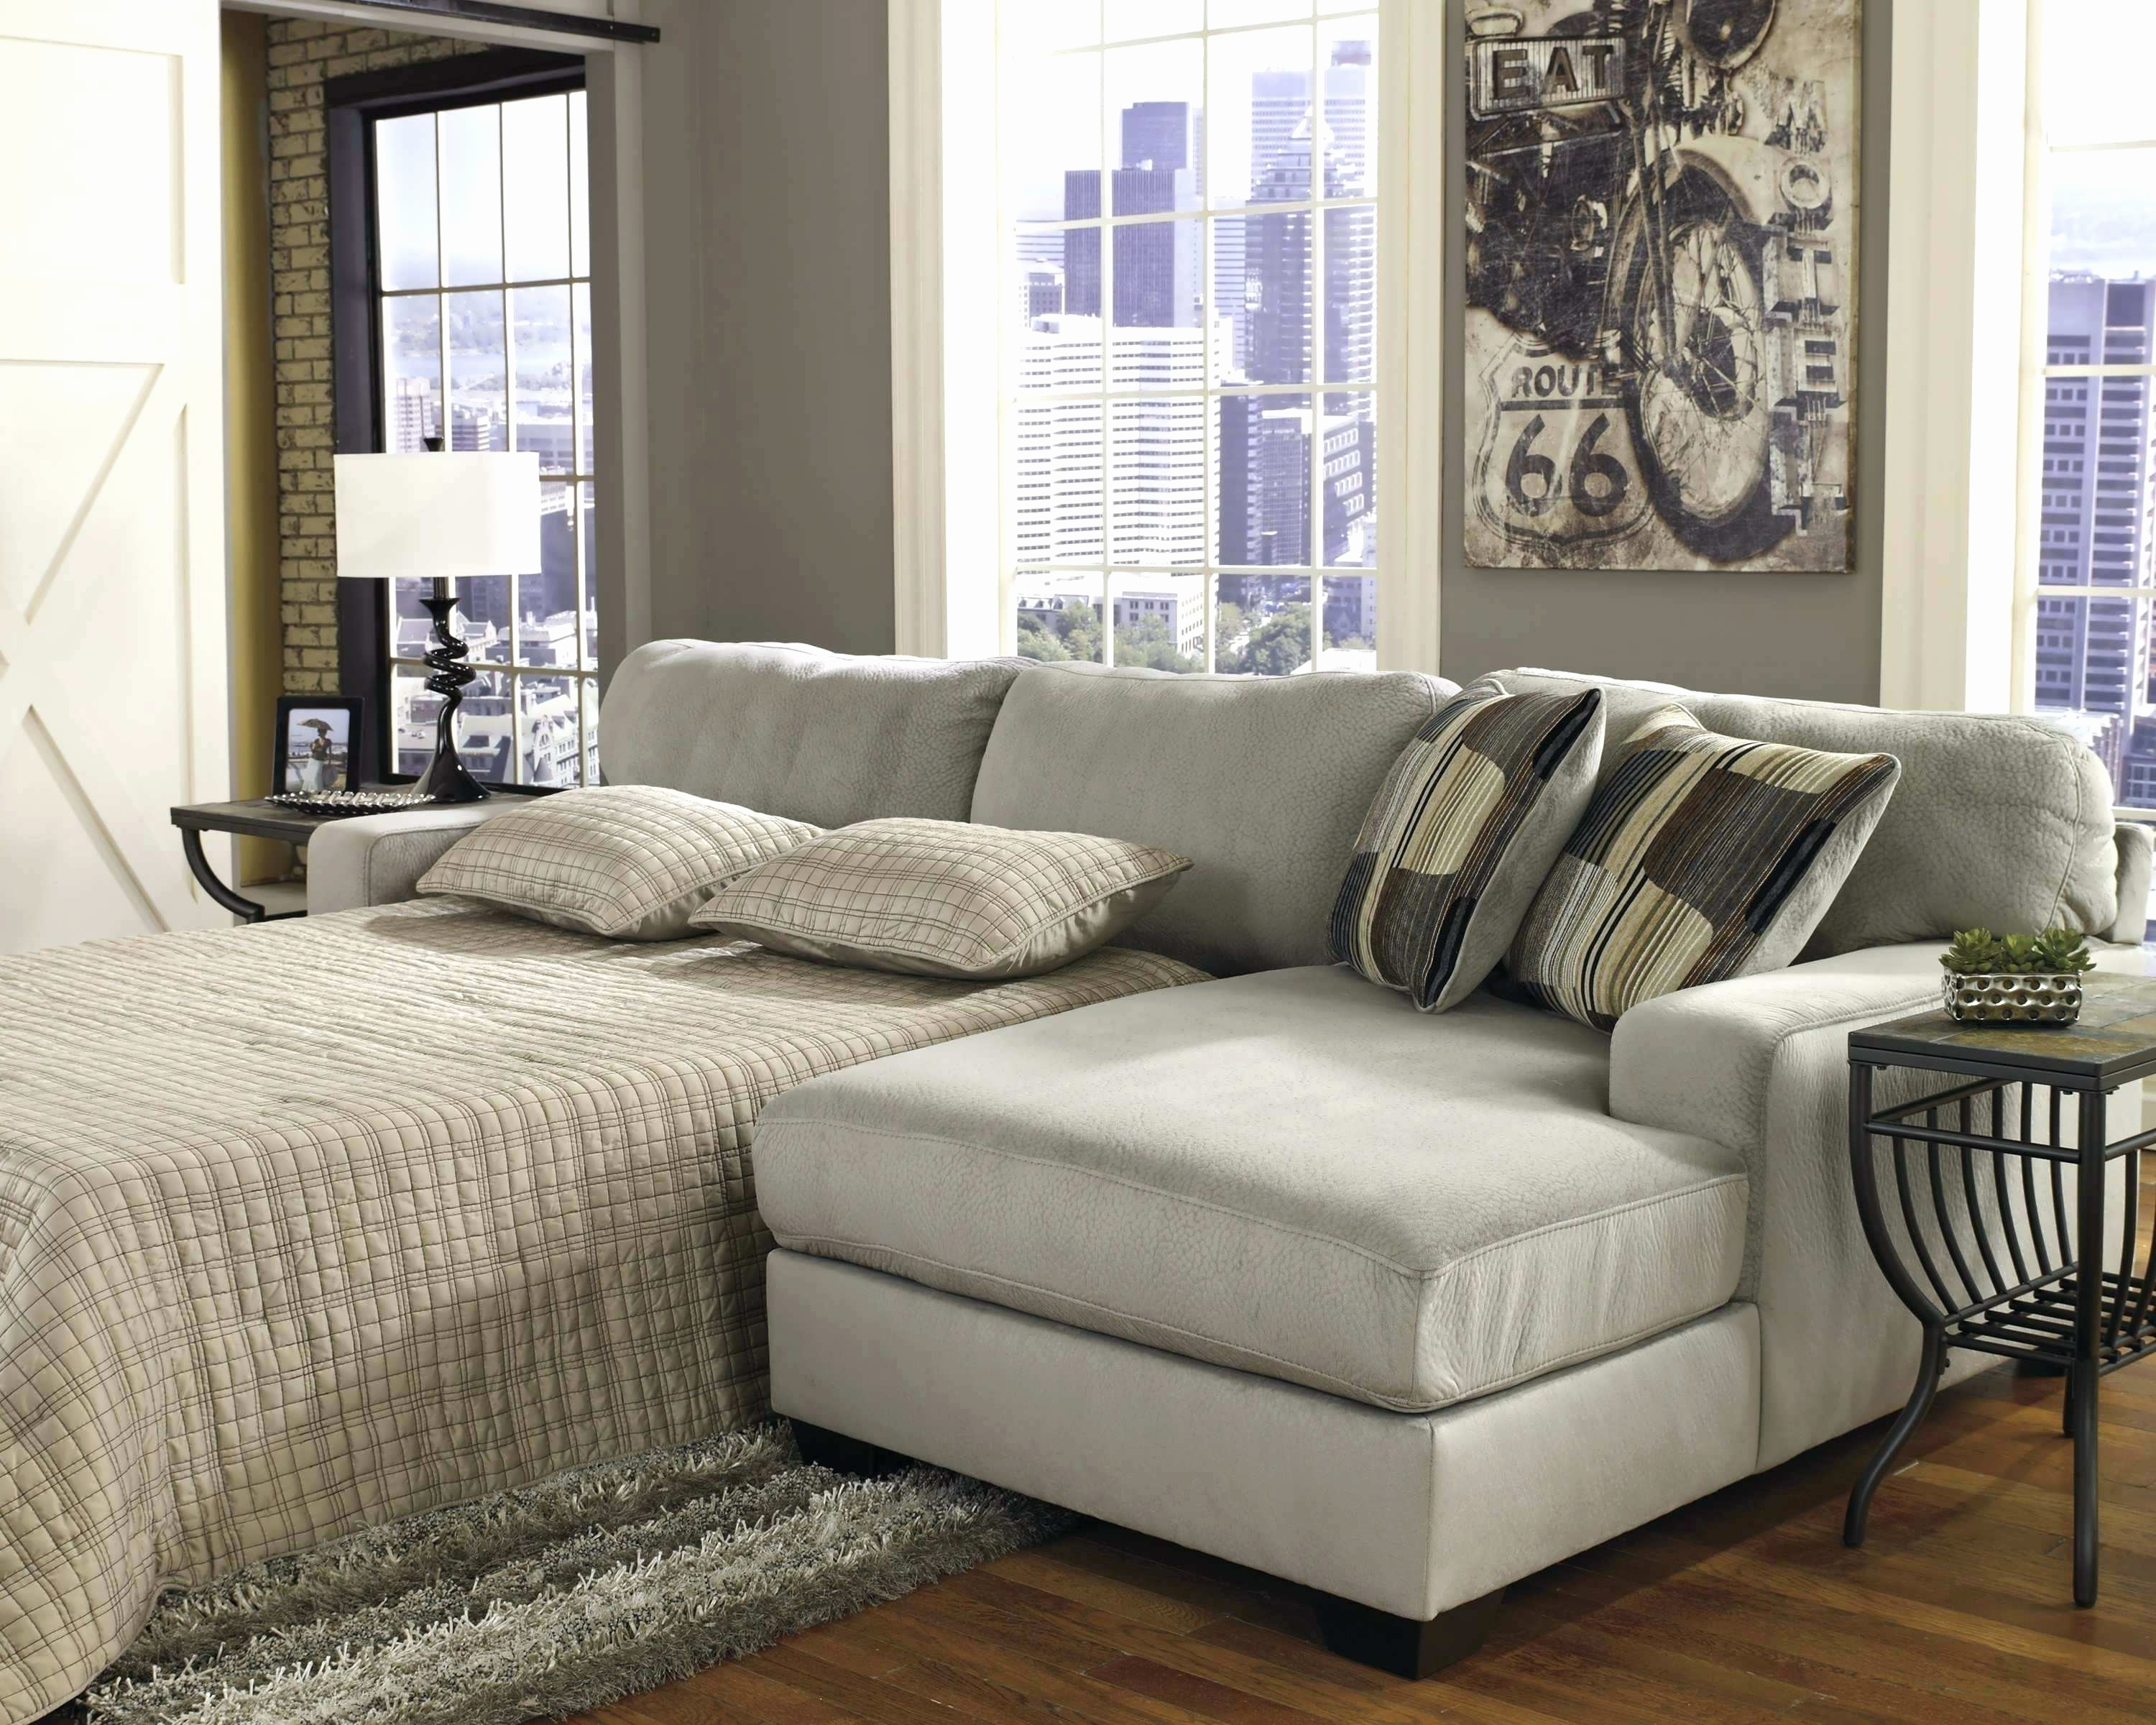 Most Popular Canada Sale Sectional Sofas Regarding Awesome Sectional Sofa Sale 2018 – Couches Ideas (View 11 of 15)